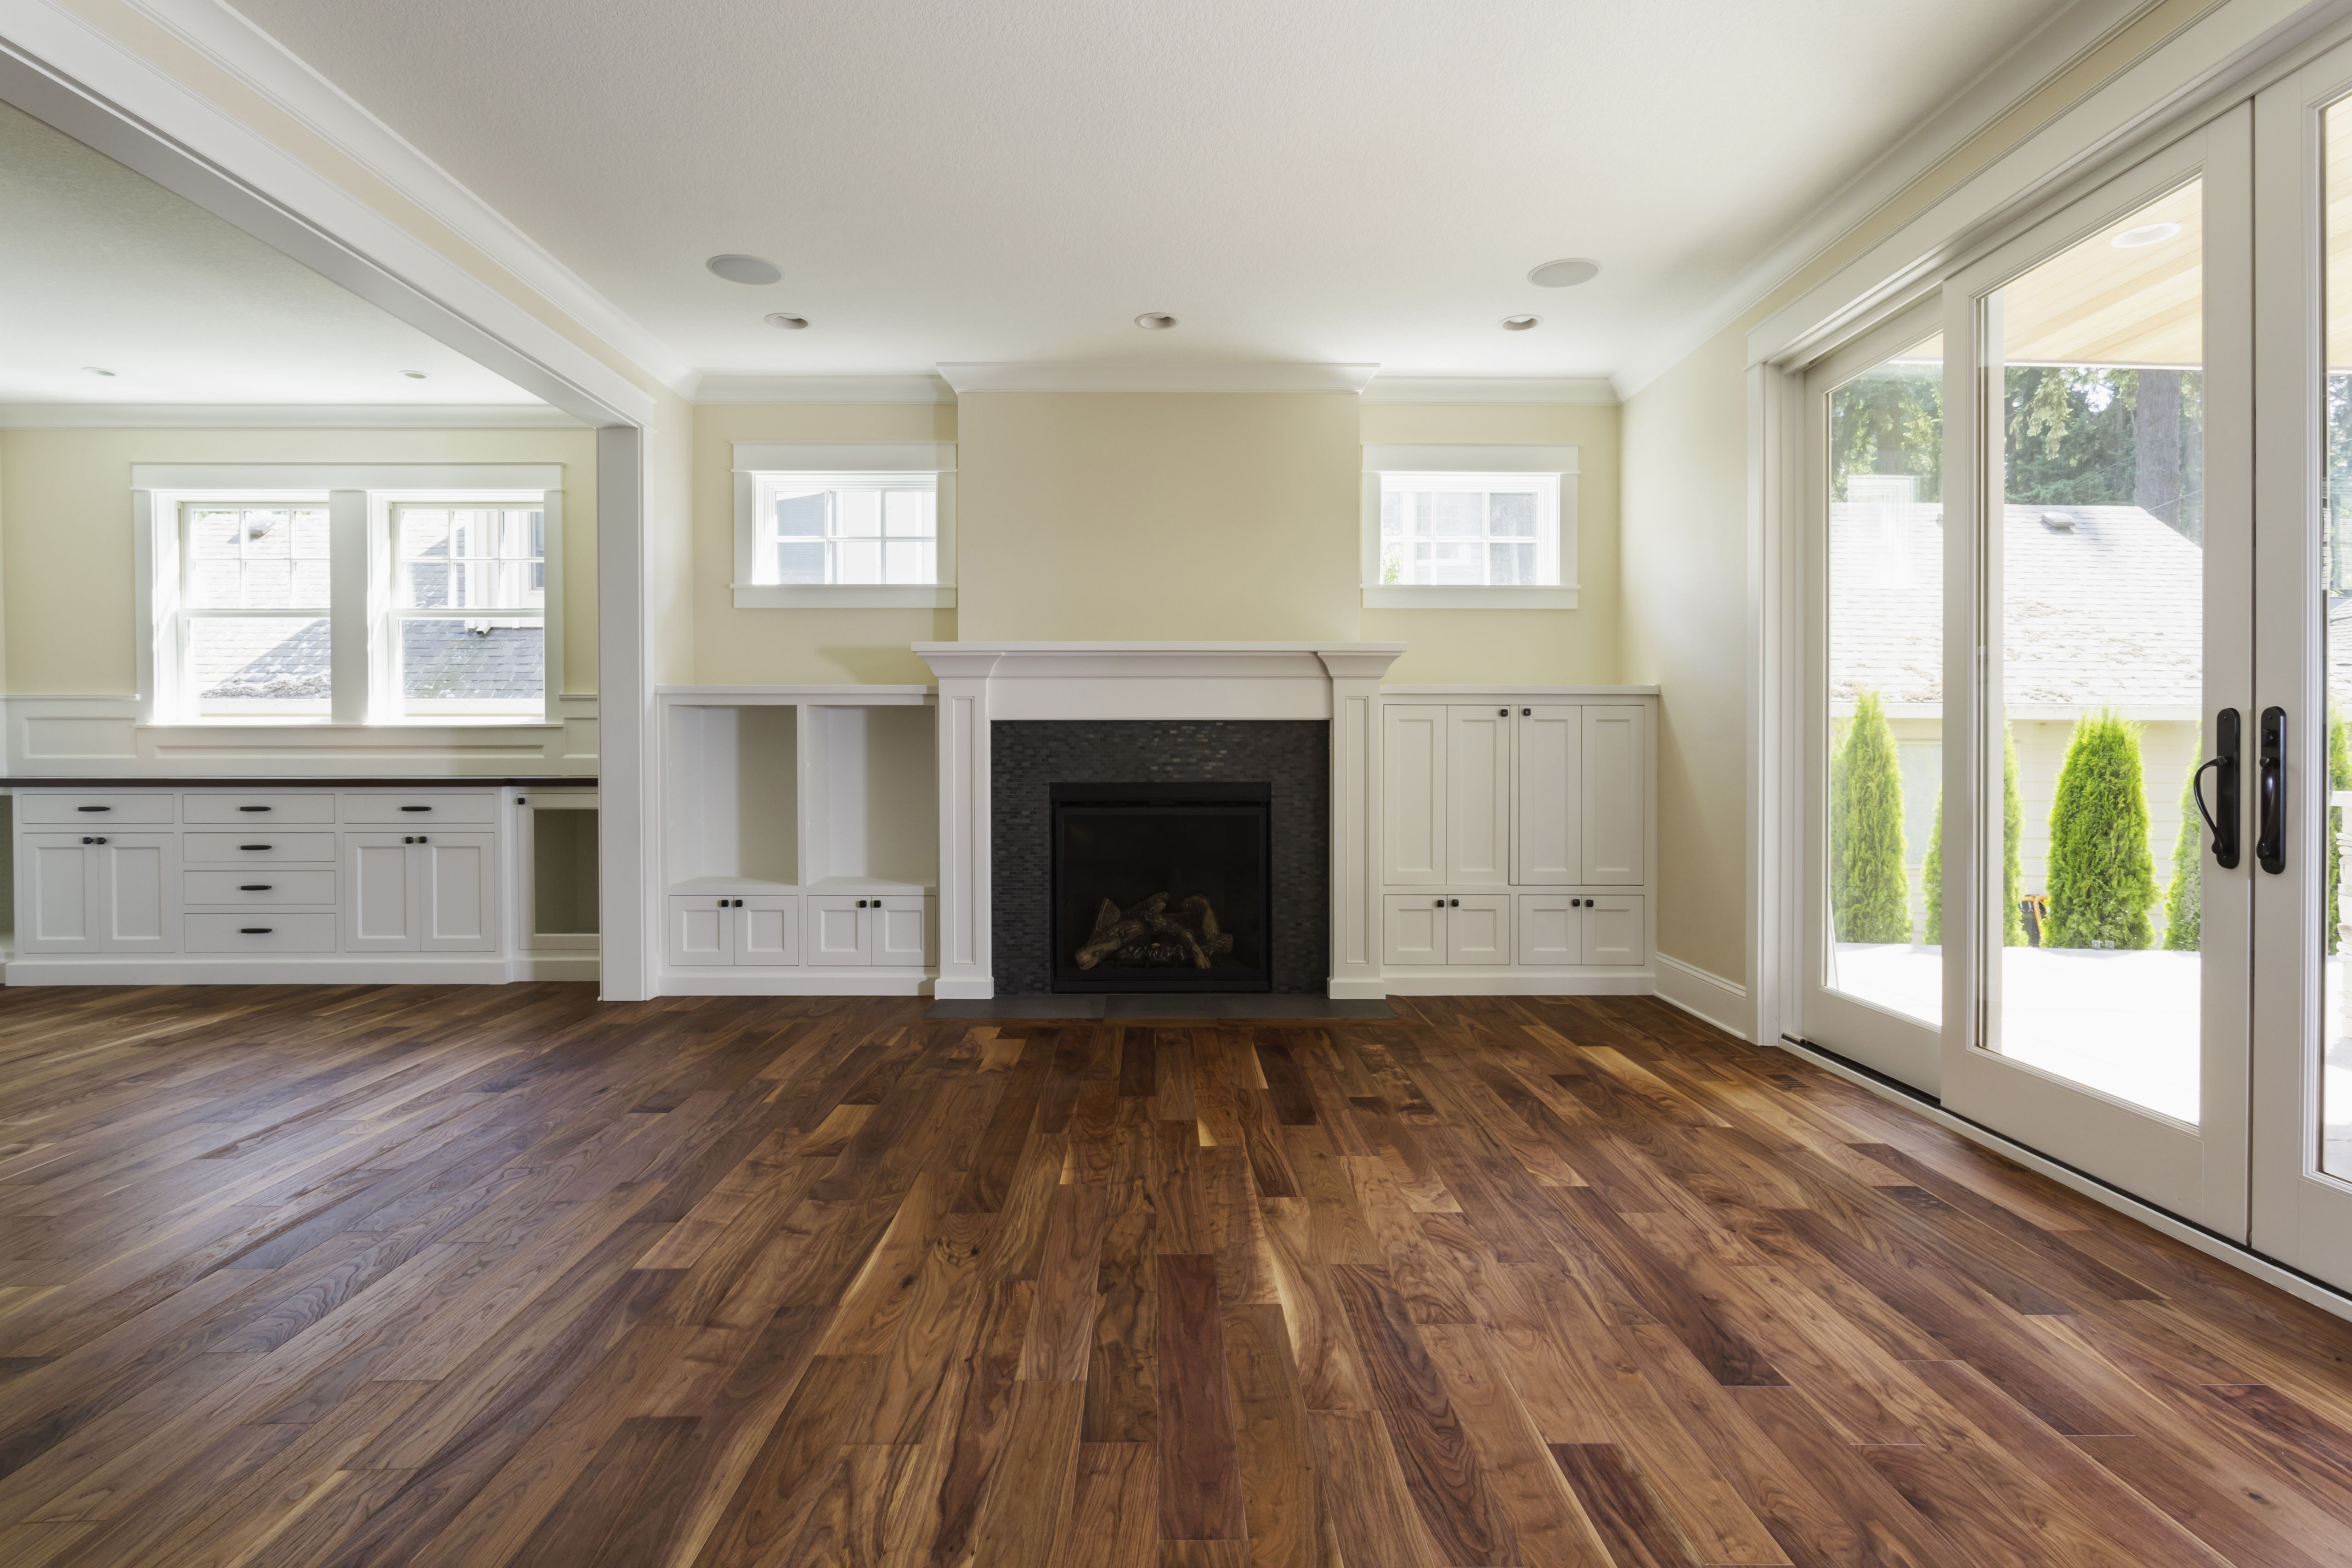 unfinished oak hardwood flooring for sale of the pros and cons of prefinished hardwood flooring in fireplace and built in shelves in living room 482143011 57bef8e33df78cc16e035397